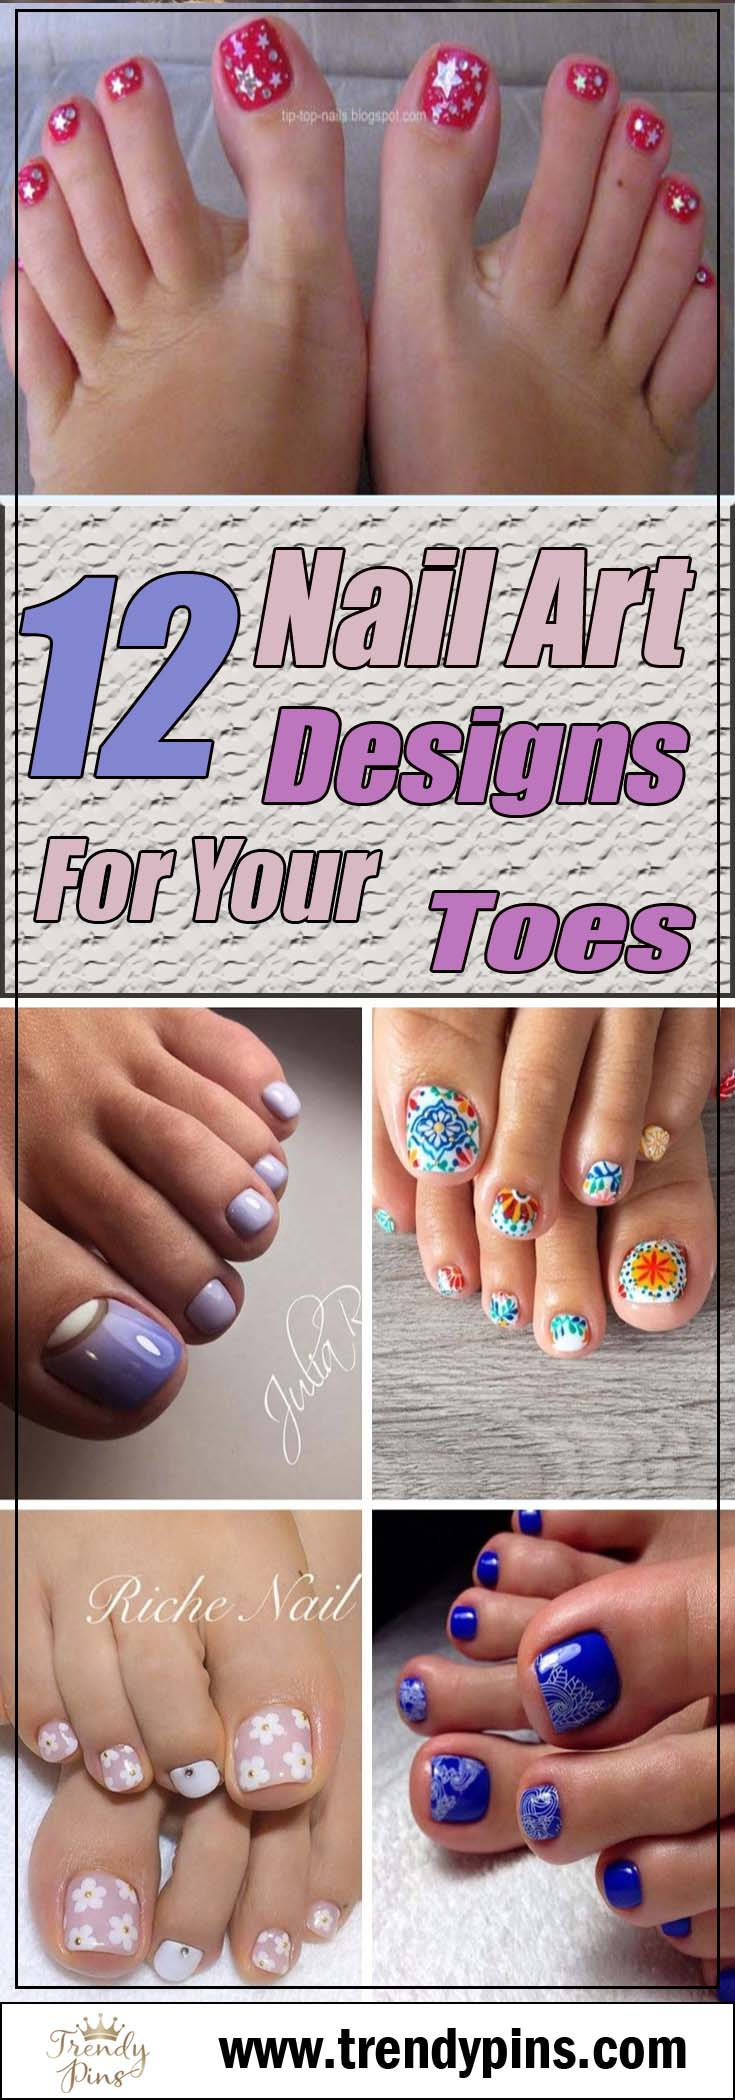 12 Nail Art Designs For Your Toes #toe nail art #nails #beauty #trendypins